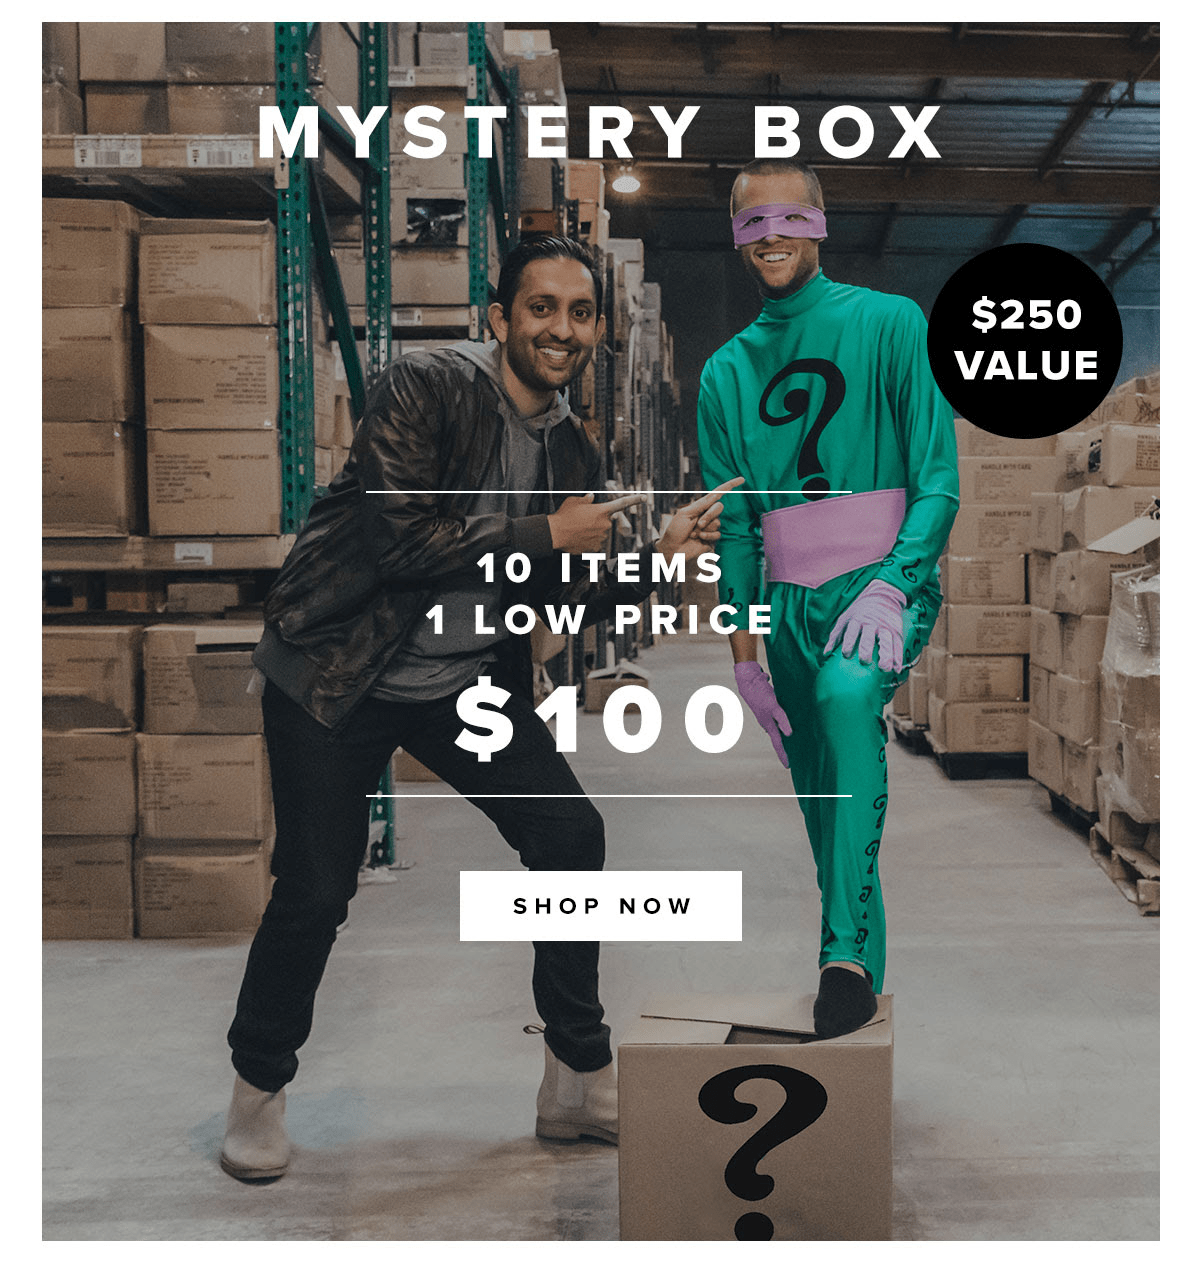 five four club black friday doorbuster epic mystery box 125 hello subscription. Black Bedroom Furniture Sets. Home Design Ideas